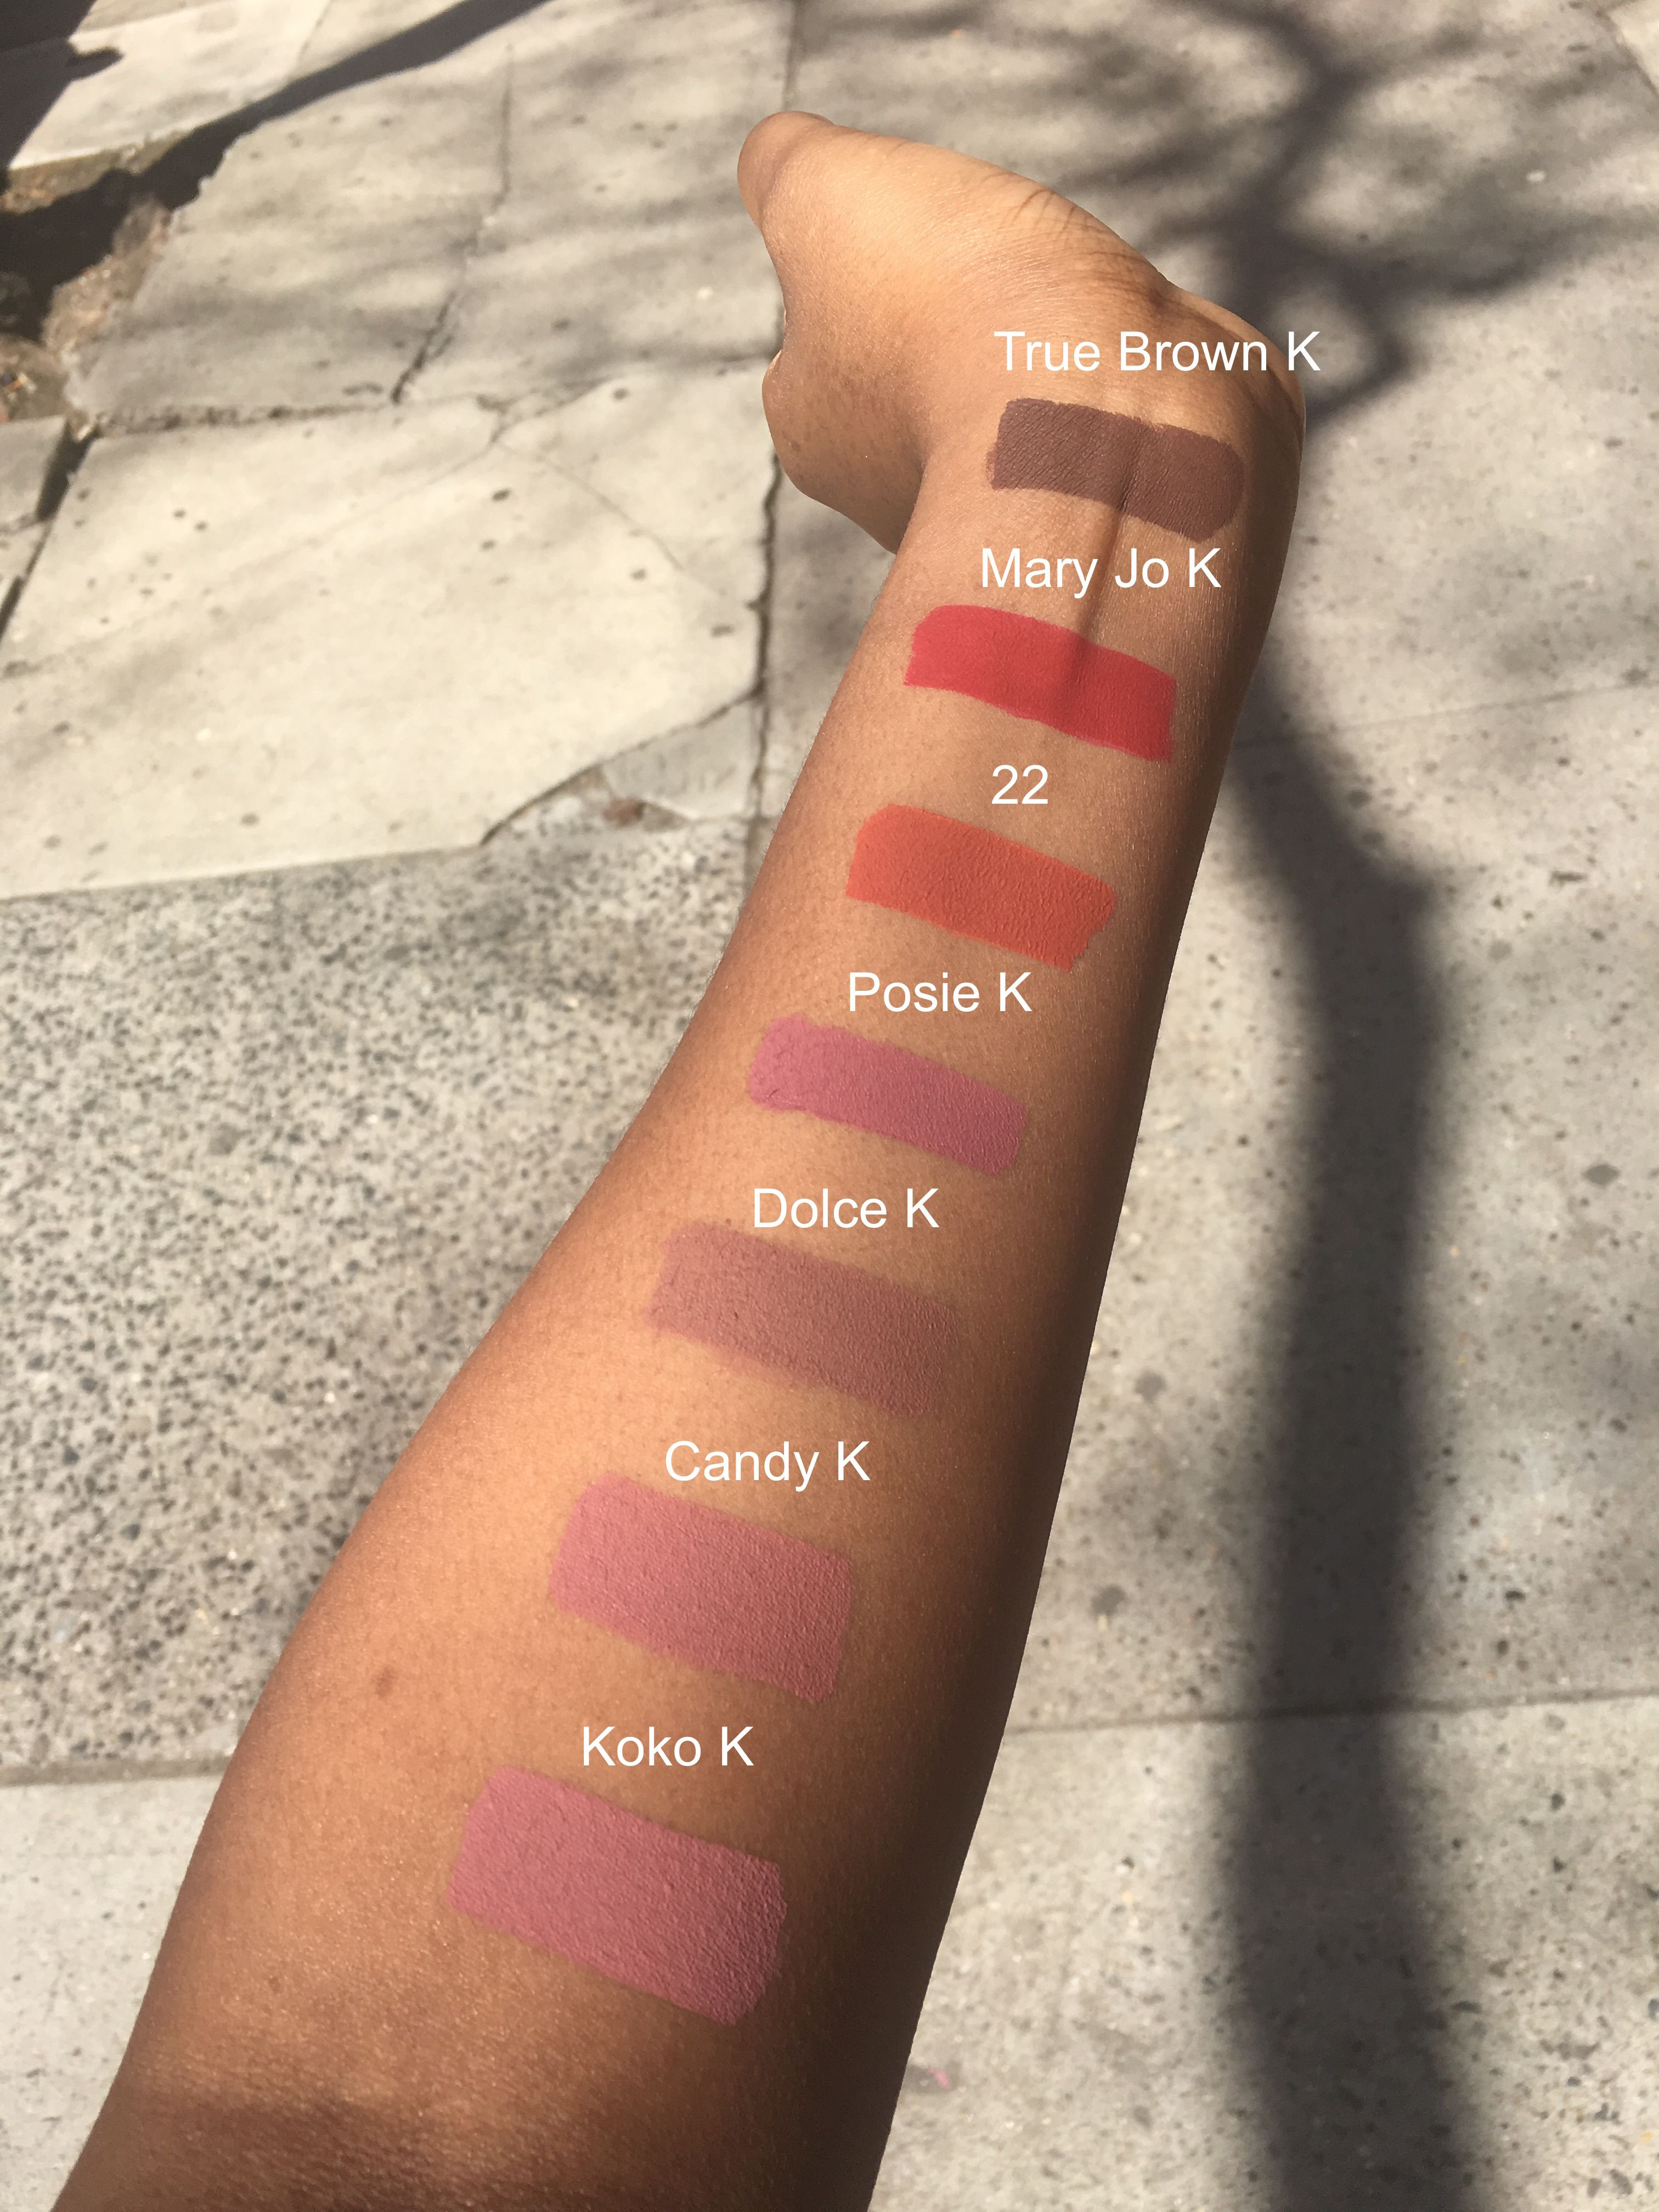 Kylie LipKit Arm Swatches And Review On ~NC45 Complexion